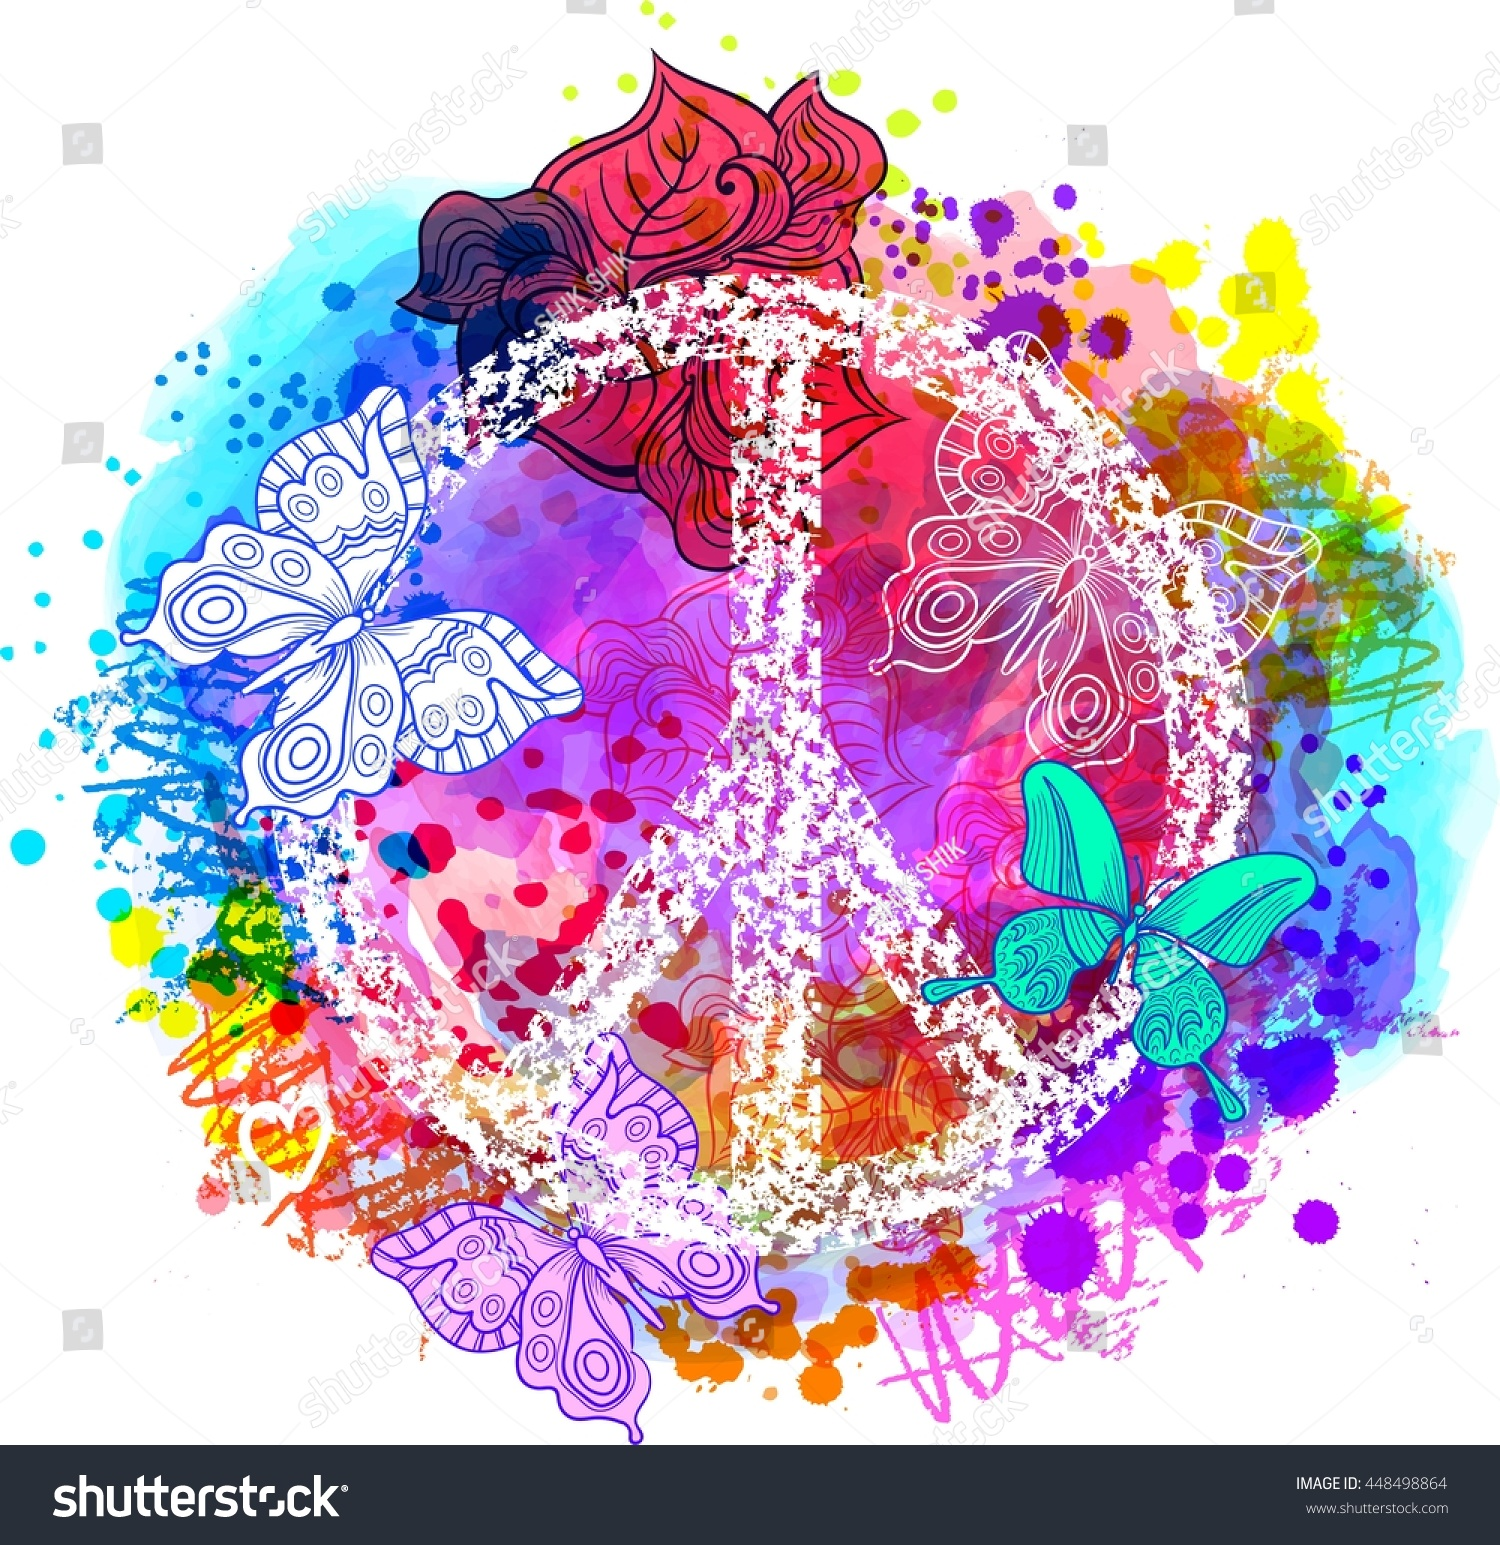 Wallpaper Of Peace: Peace Hippie Symbol Over Colorful Background Stock Vector